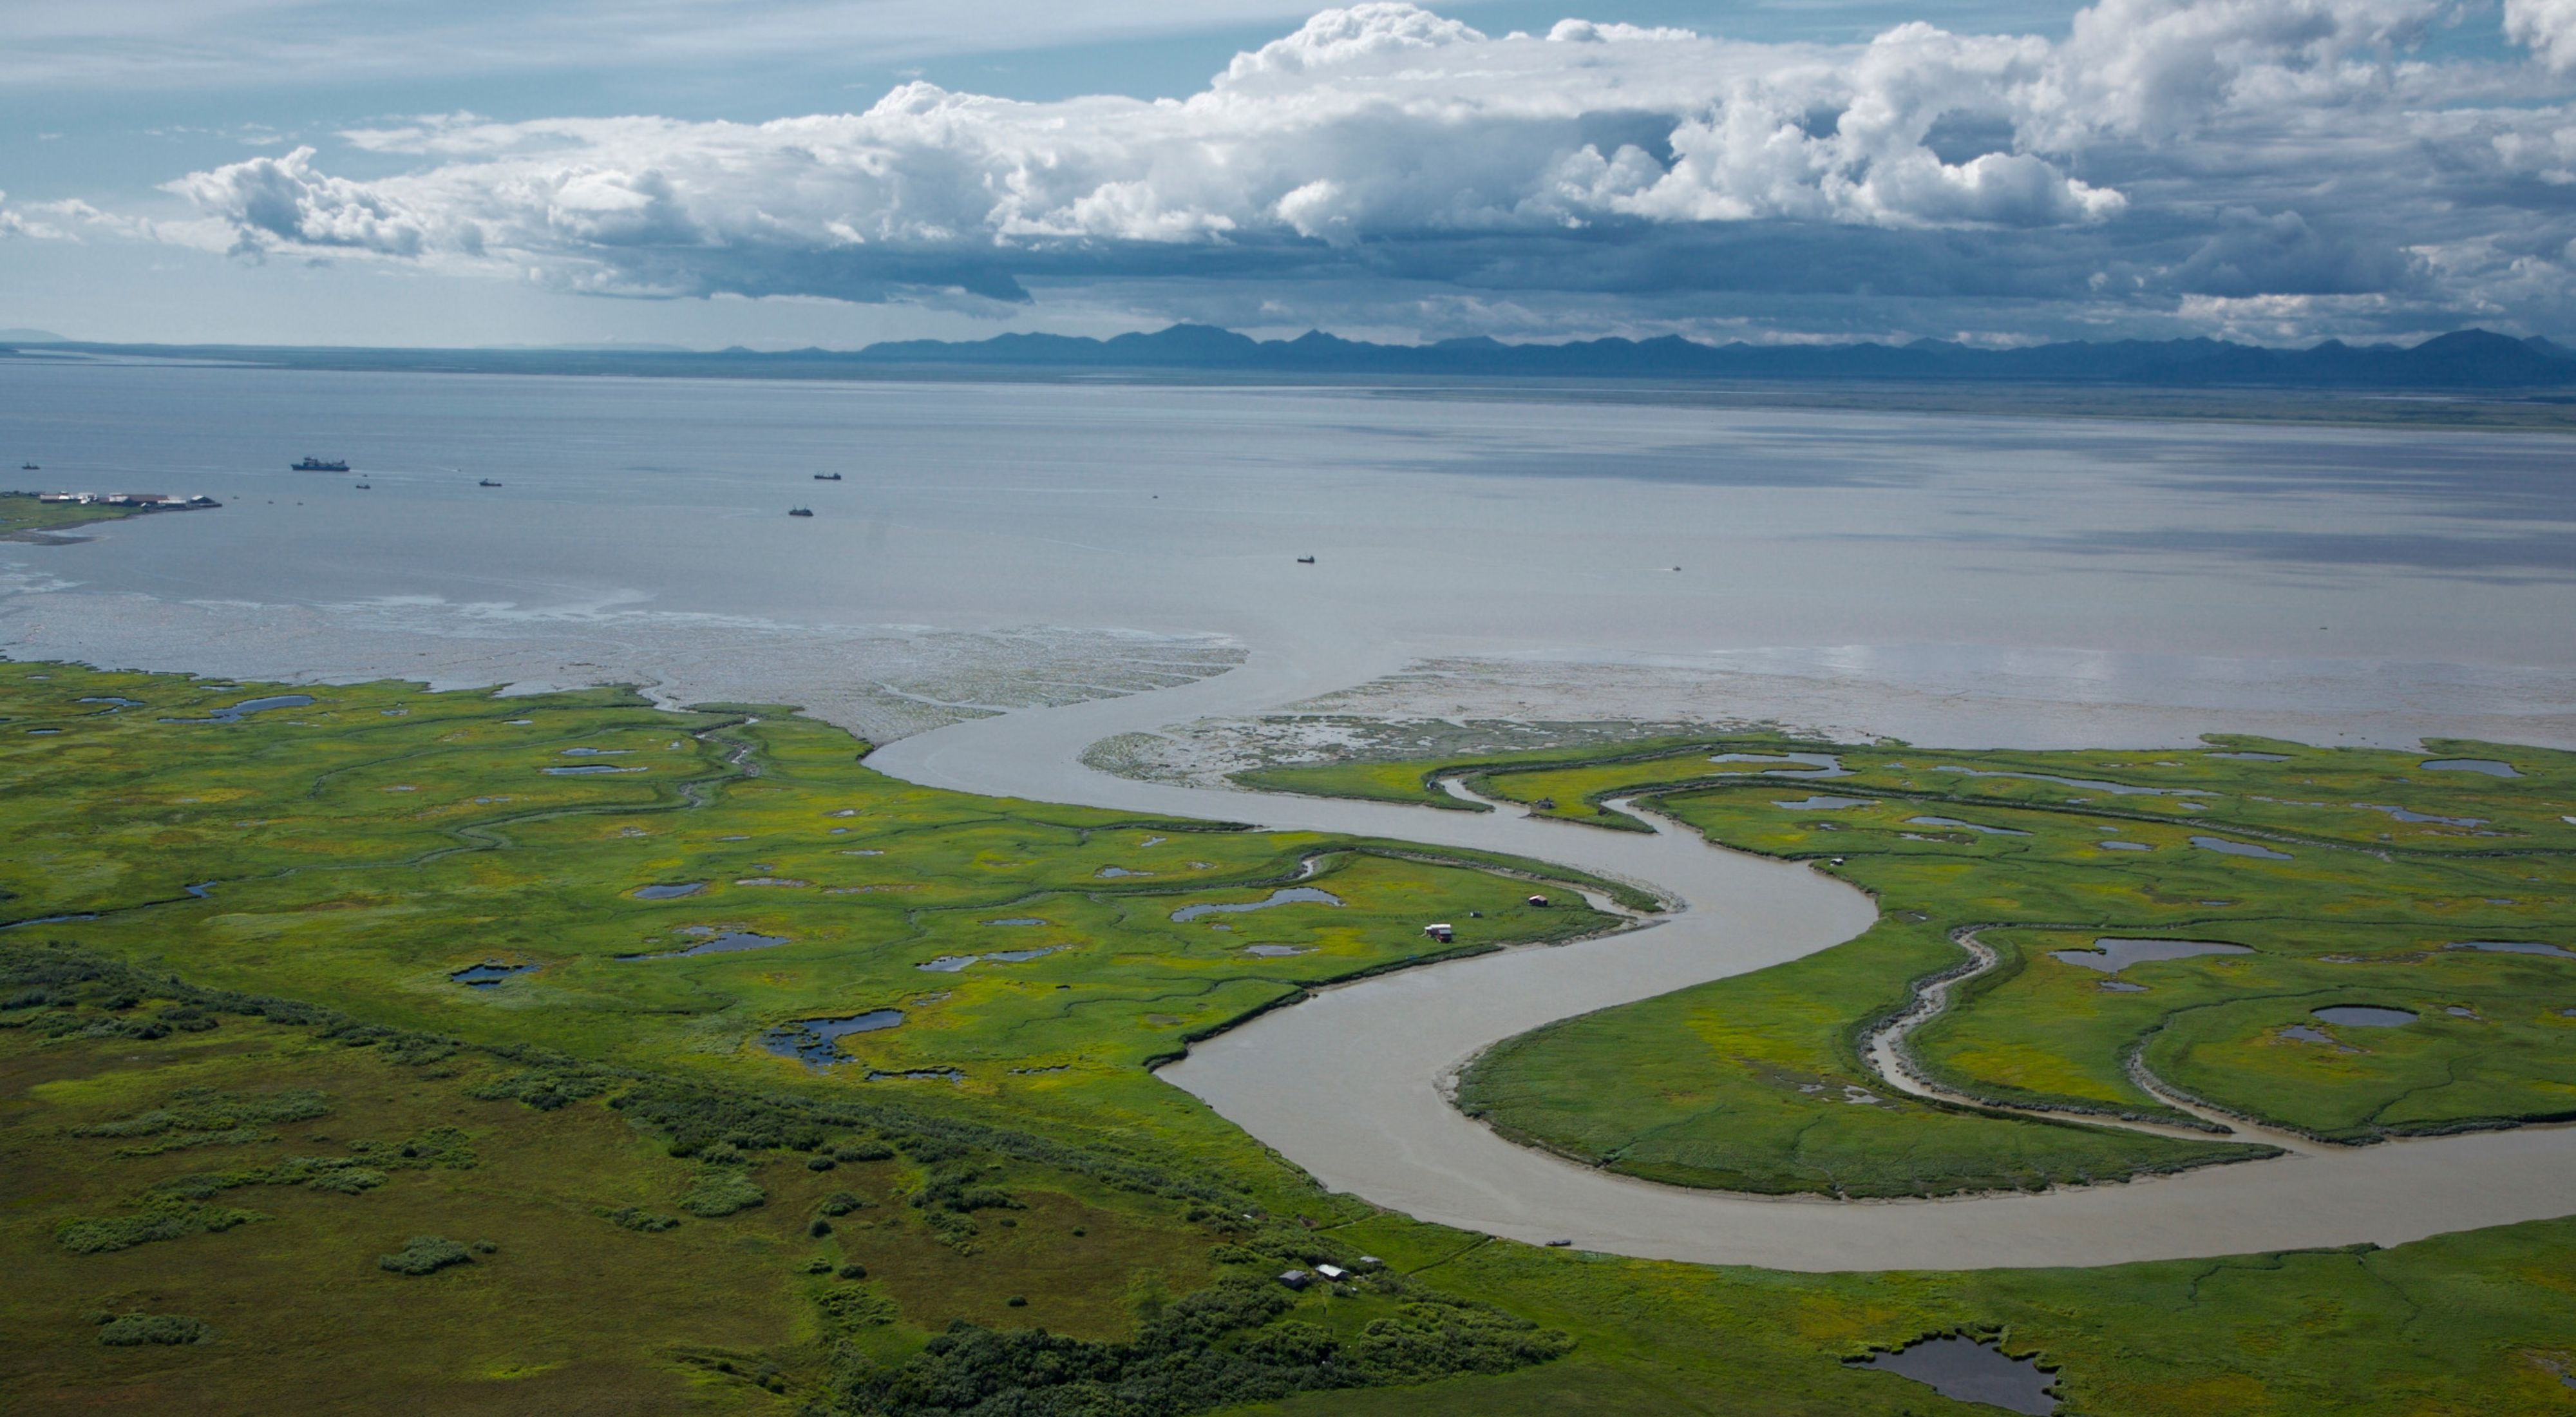 Alaskan landscape of Bristol Bay and mountains.